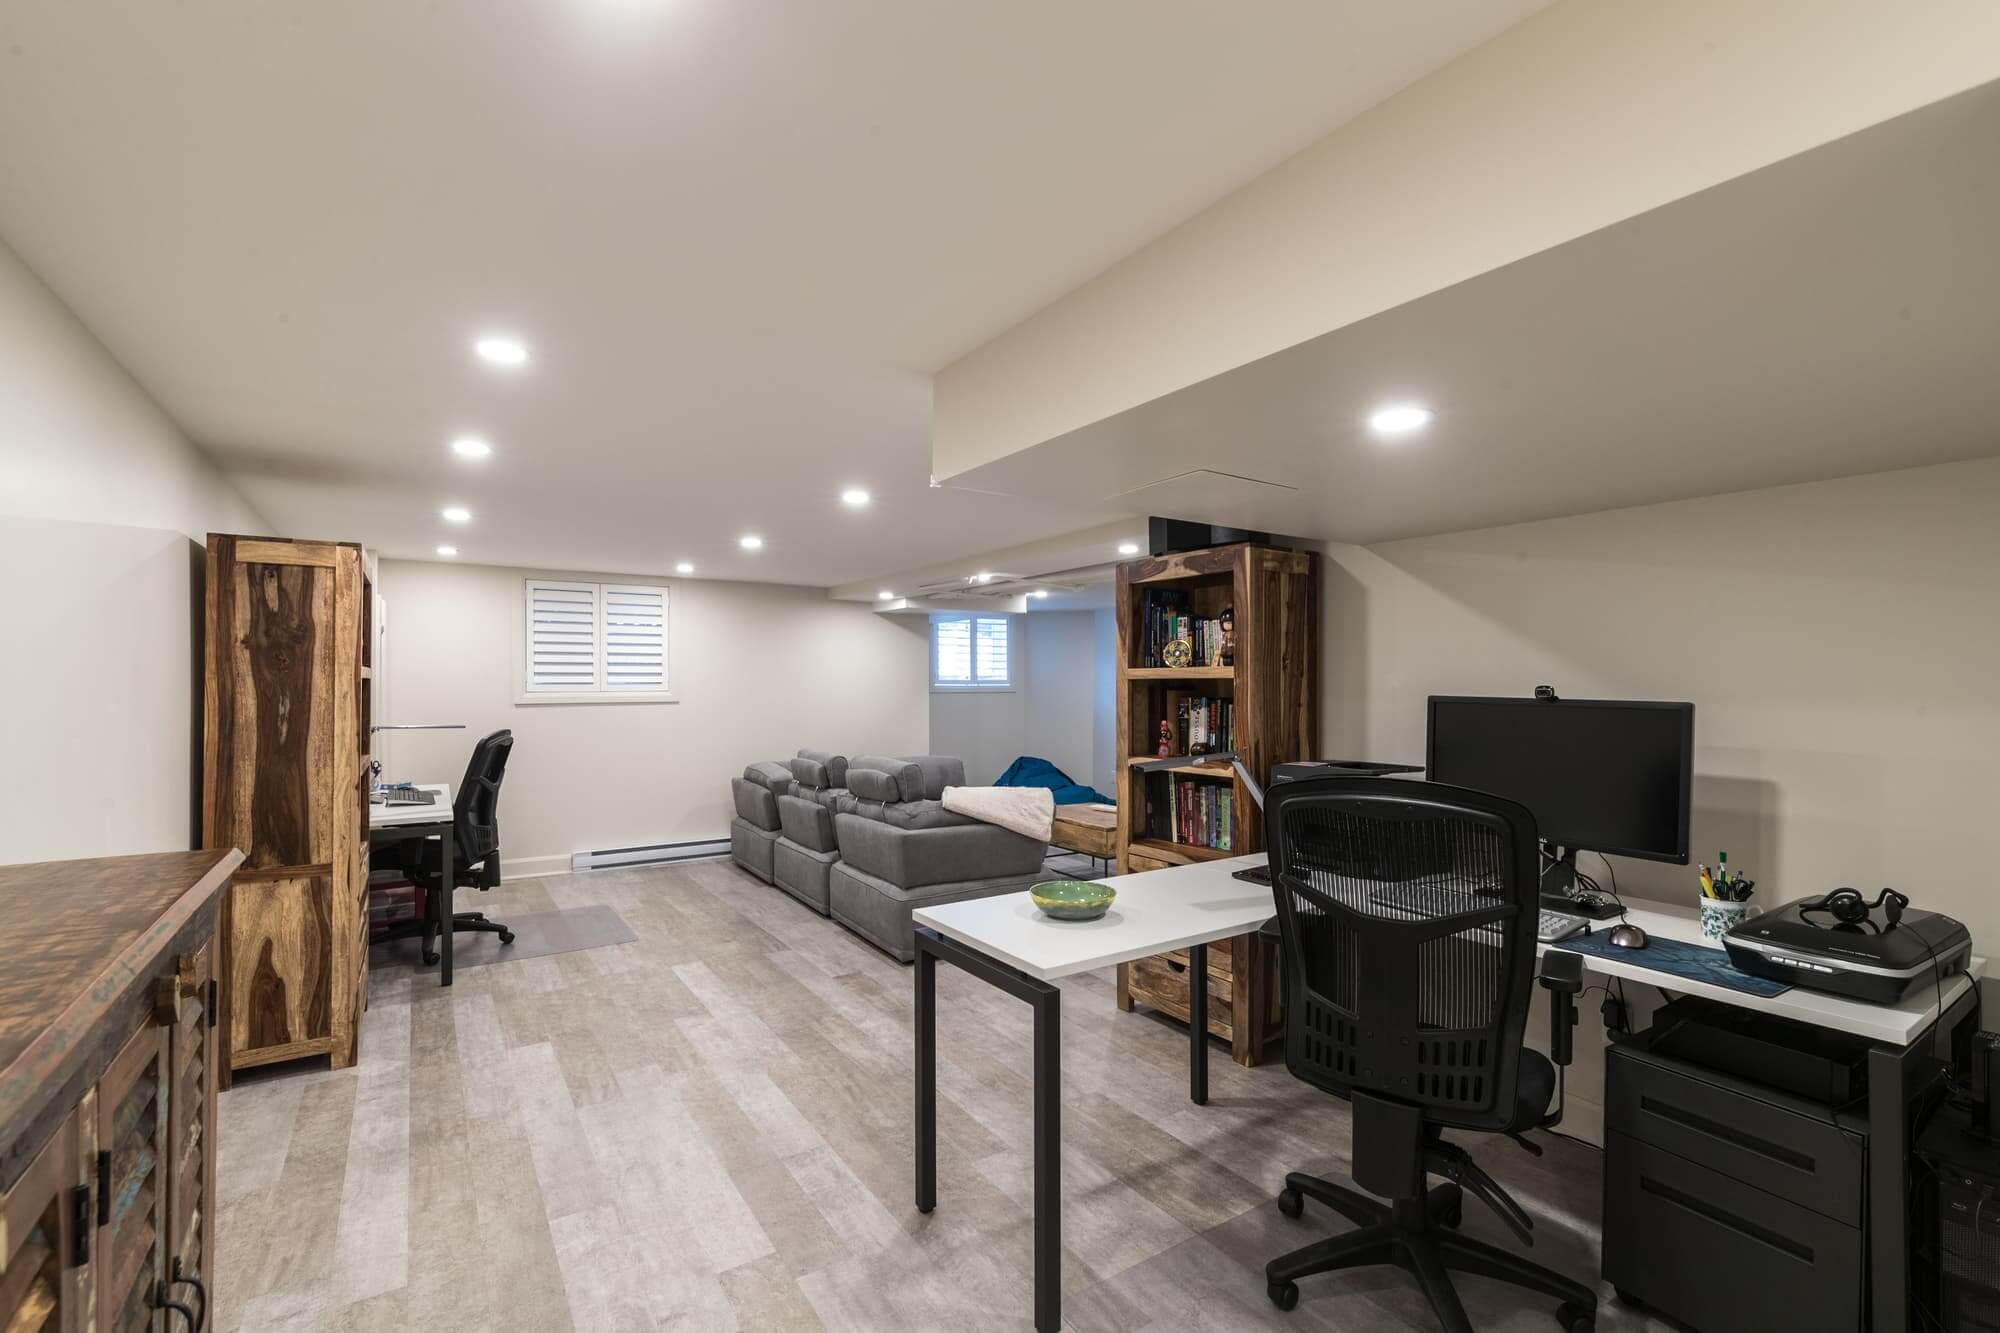 Beautiful Basement Renovation Project With Photos And The